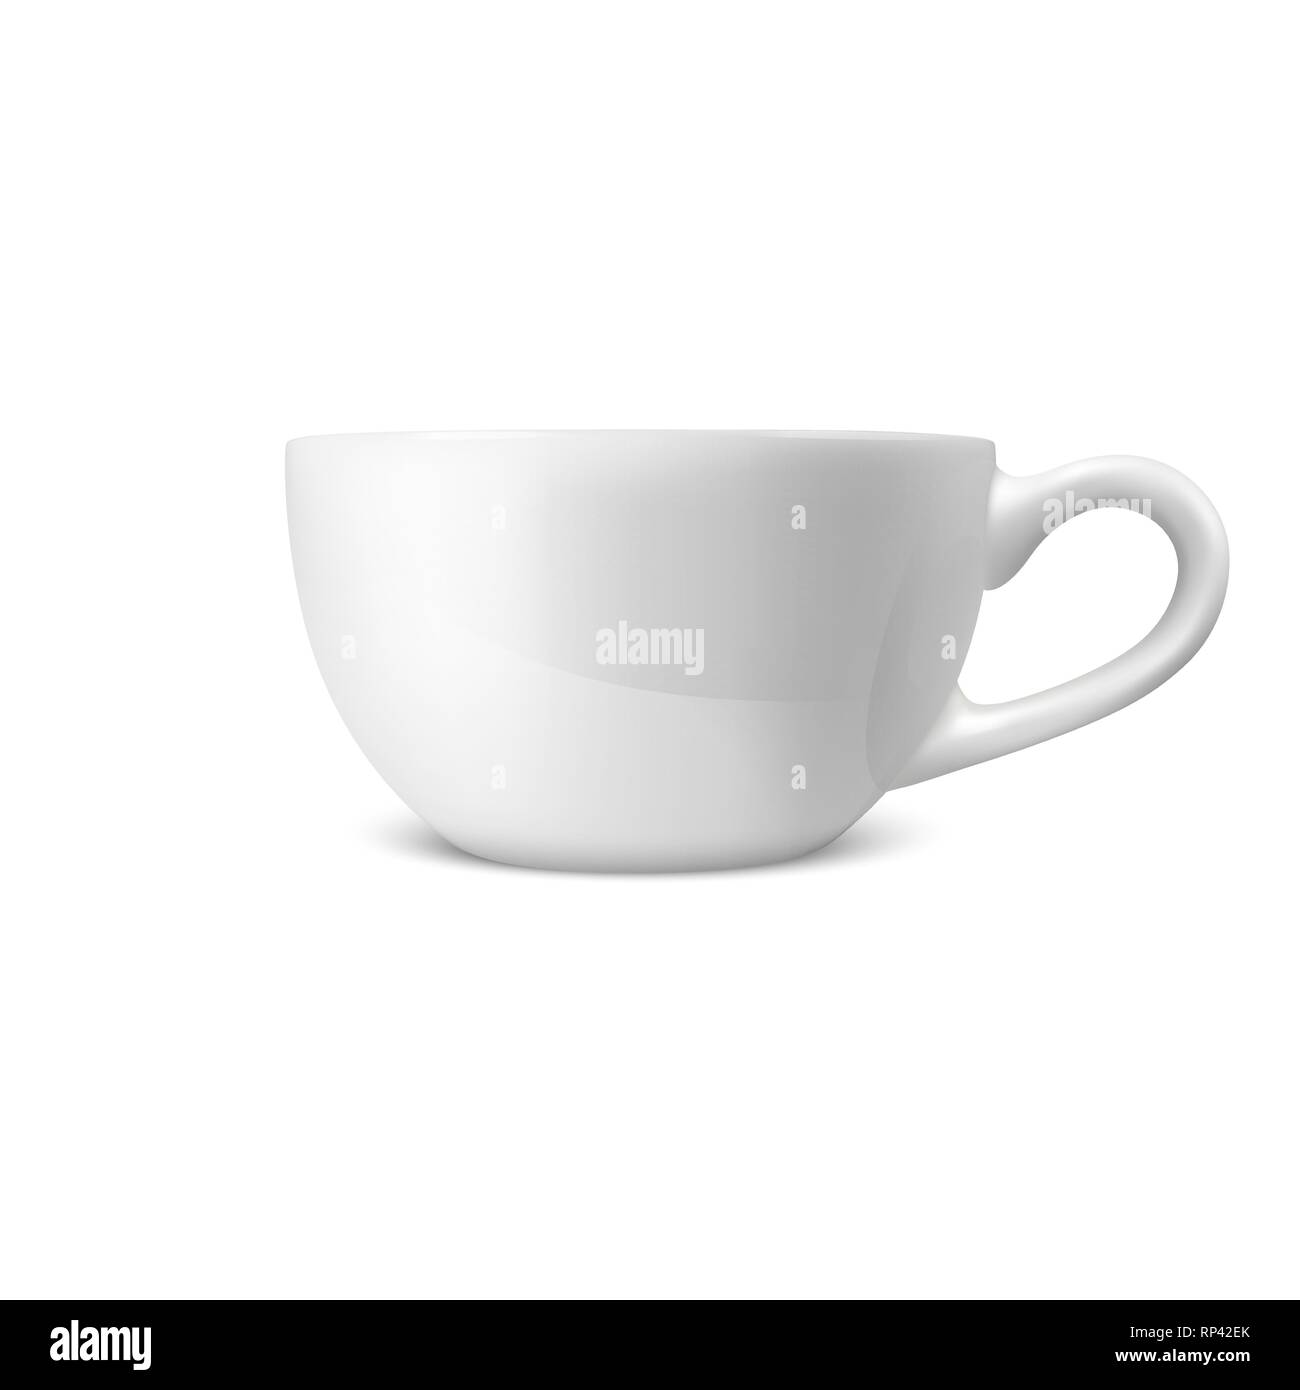 Realistic Vector 3d Glossy Blank White Coffee Tea Cup, Mug Icon Closeup Isolated on White Background. Design Template of Porcelain Cup or Mug for - Stock Image